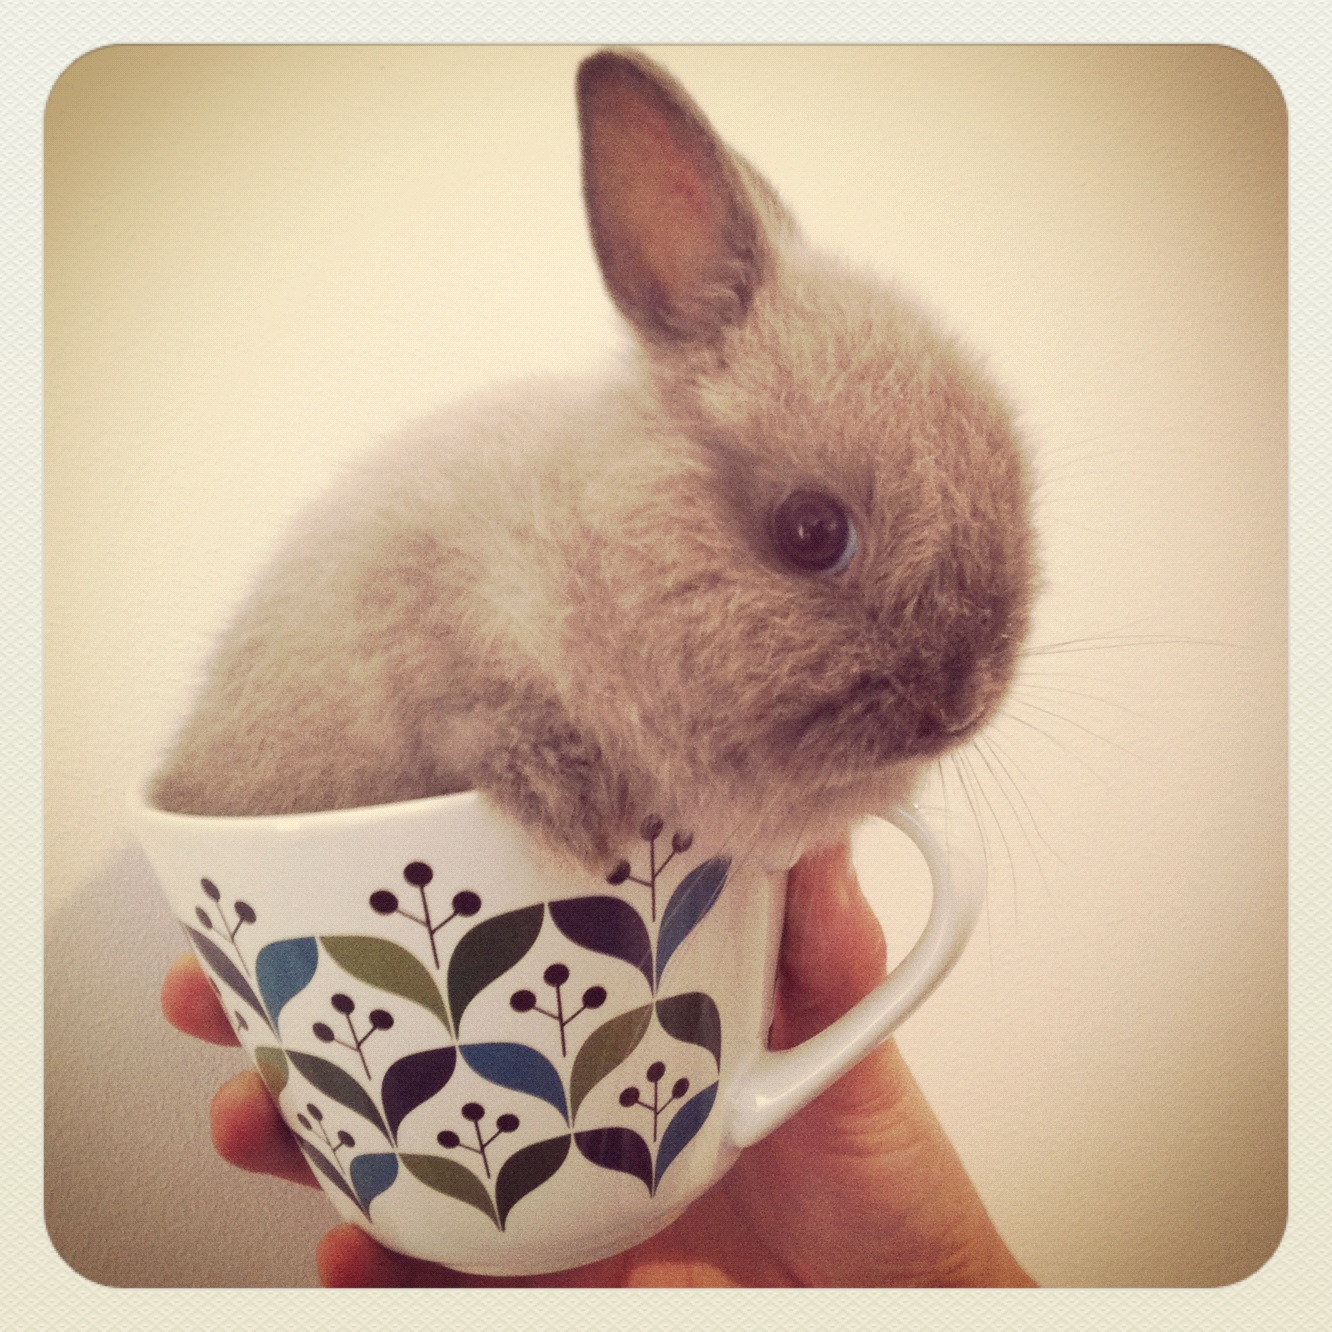 Don't Drink Me, Human! I'm Not Tea!